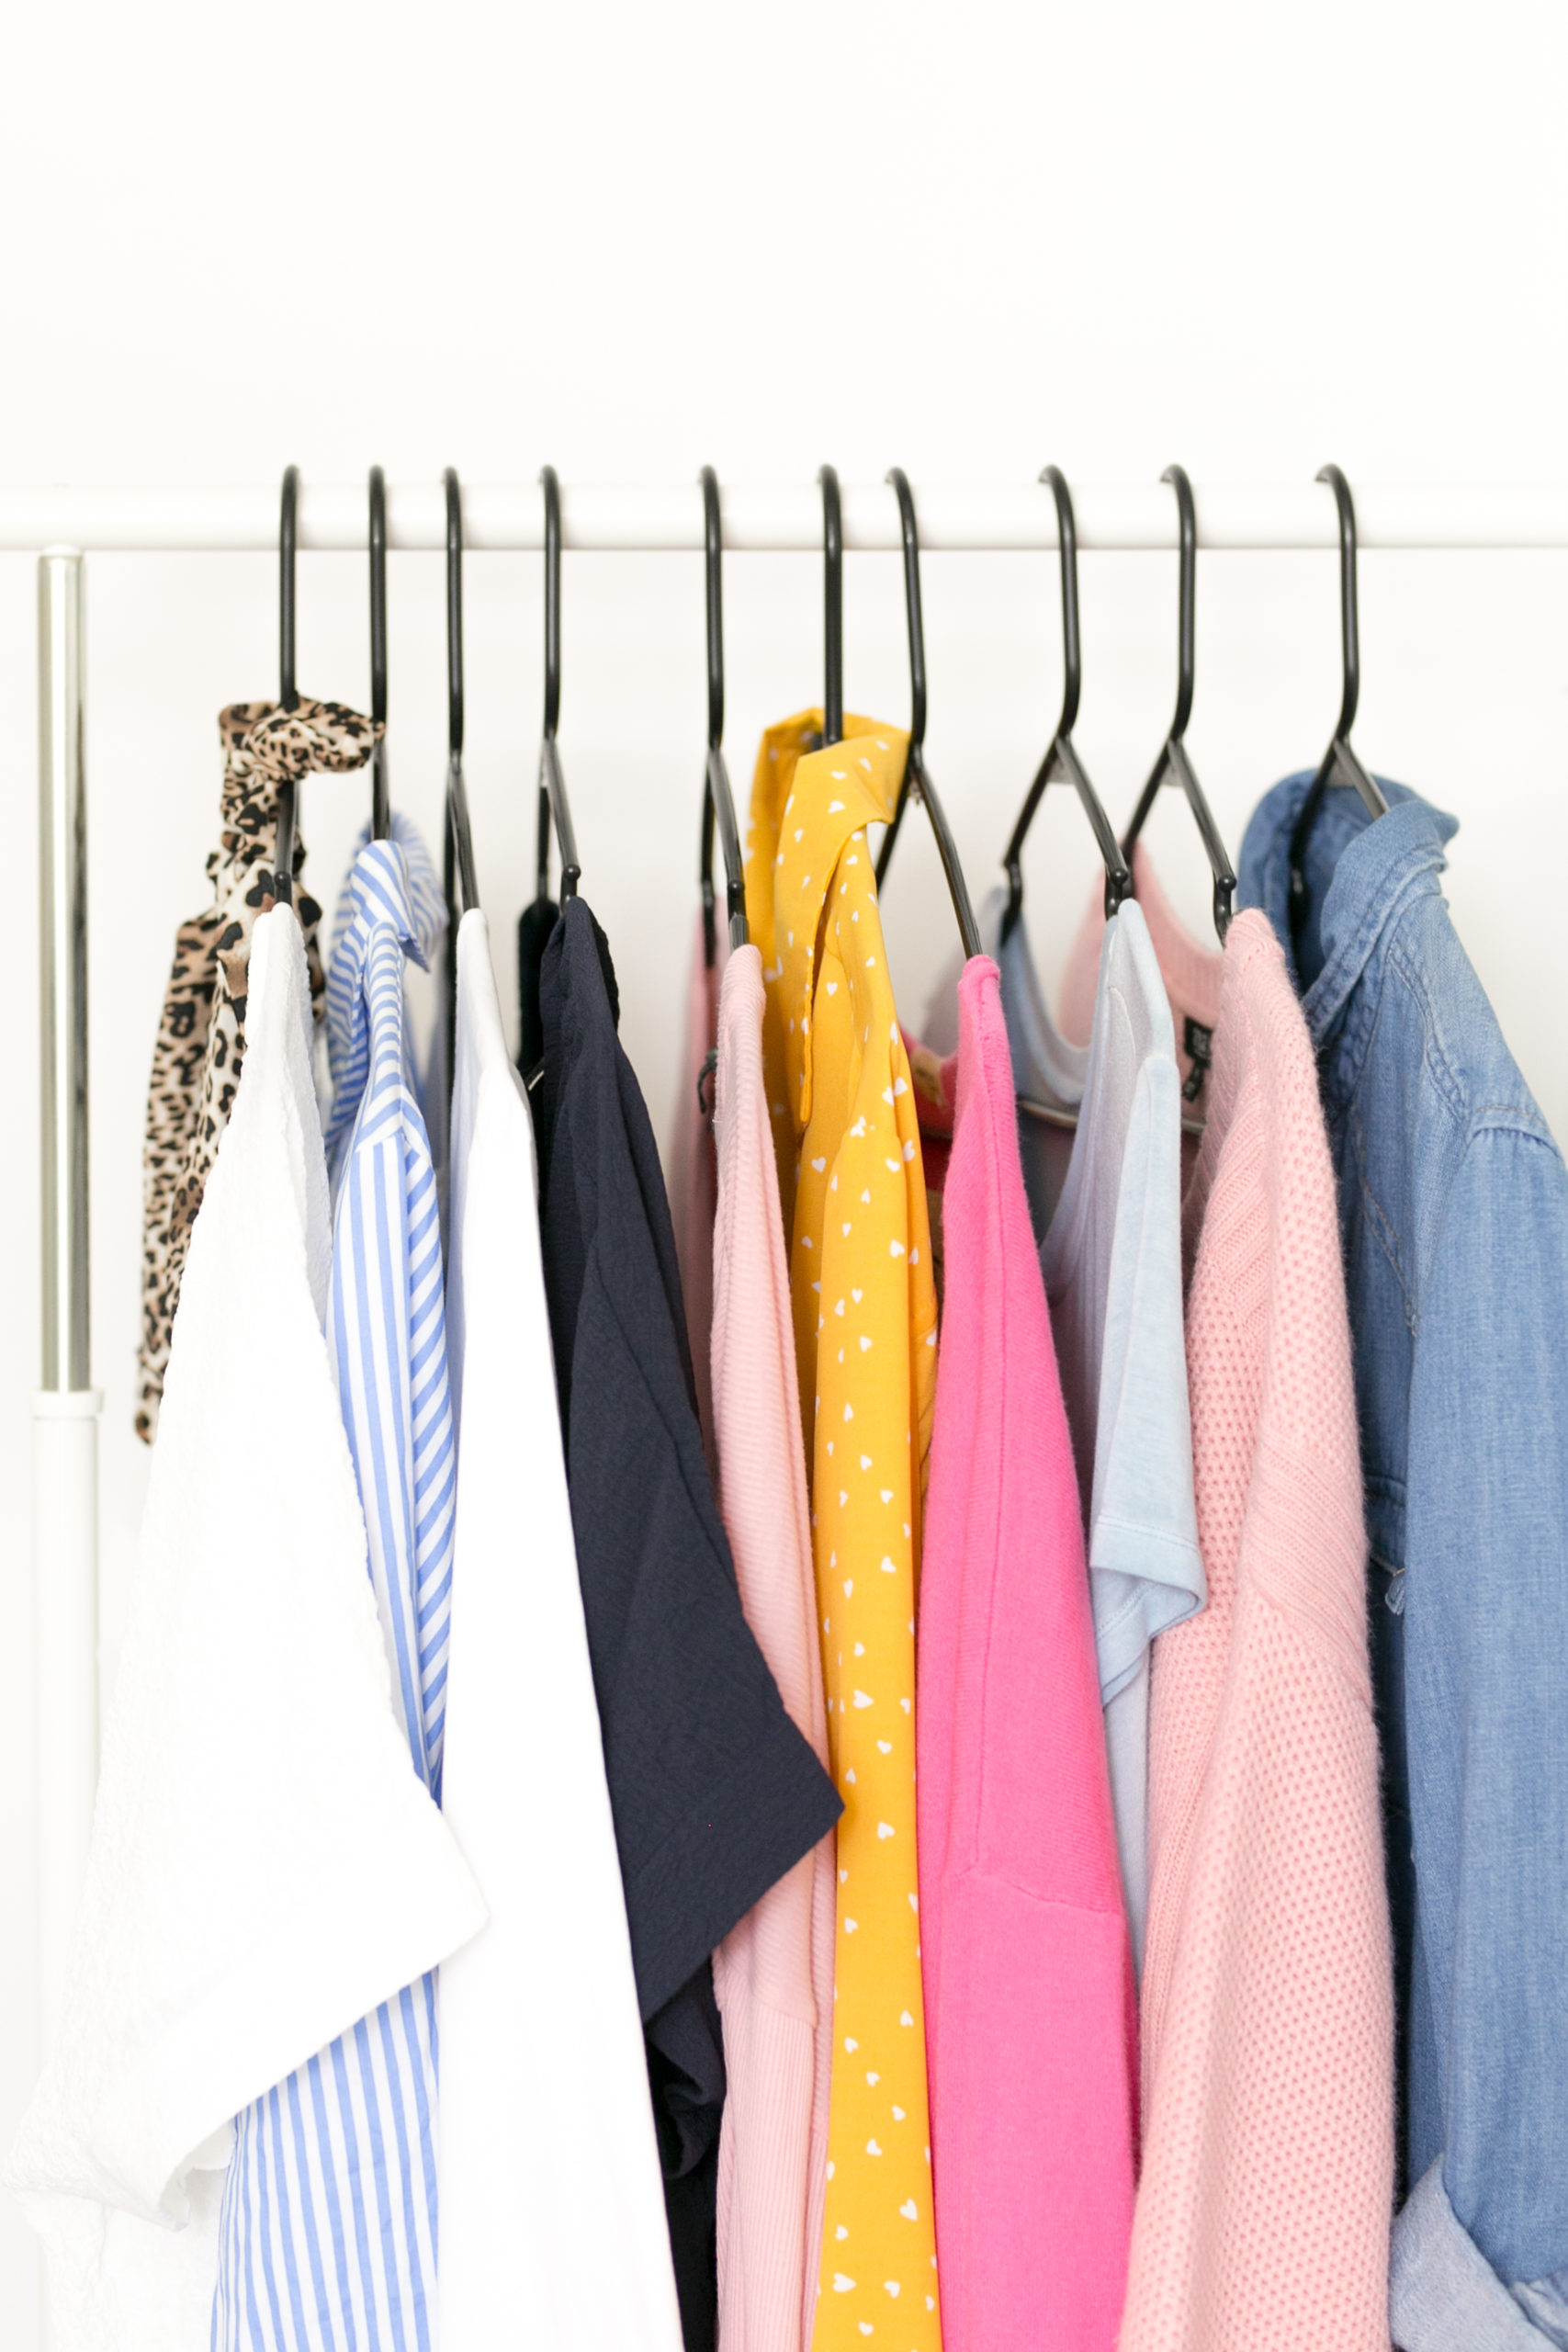 What to wear to a brand photo shoot